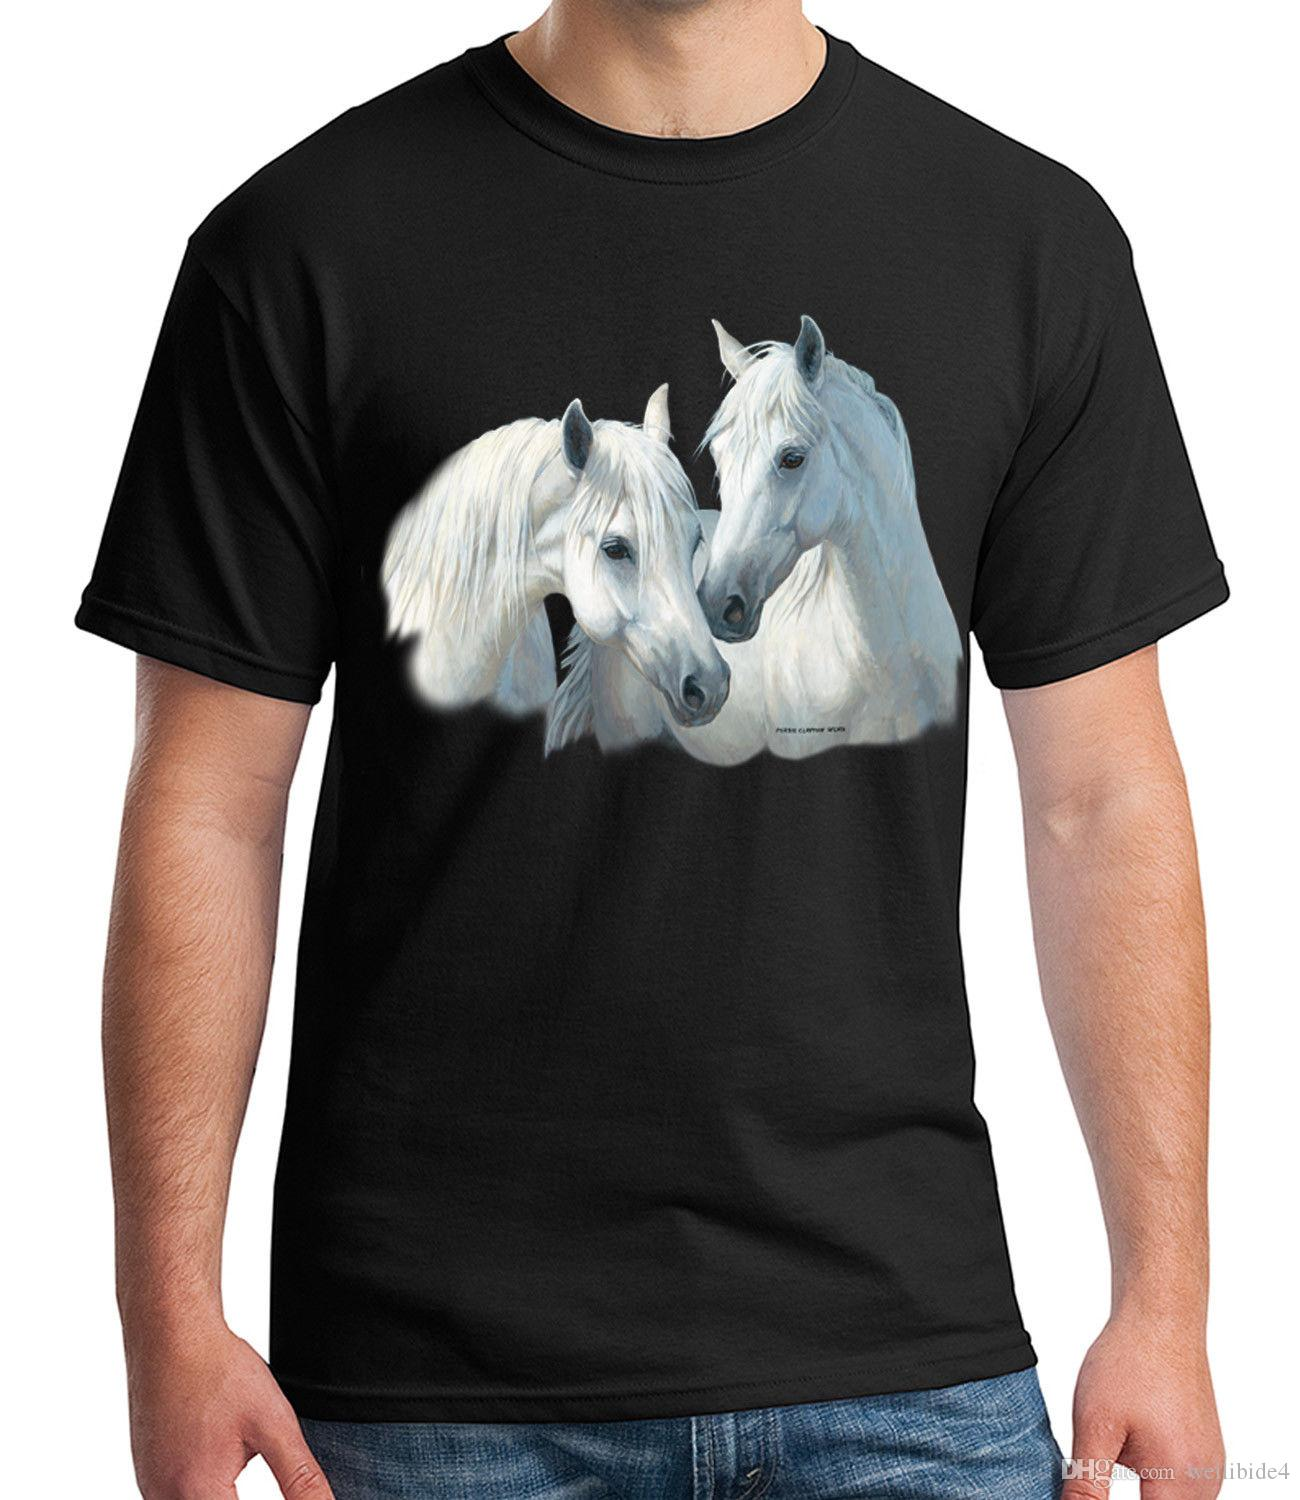 0fd916b8 White Horses Adult'S T Shirt Stable Mates Horse Tee For Men 1491C  Streetwear Funny Print Clothing Hip Tope Mans Tops Tees Online Shop T Shirt  Shirts ...